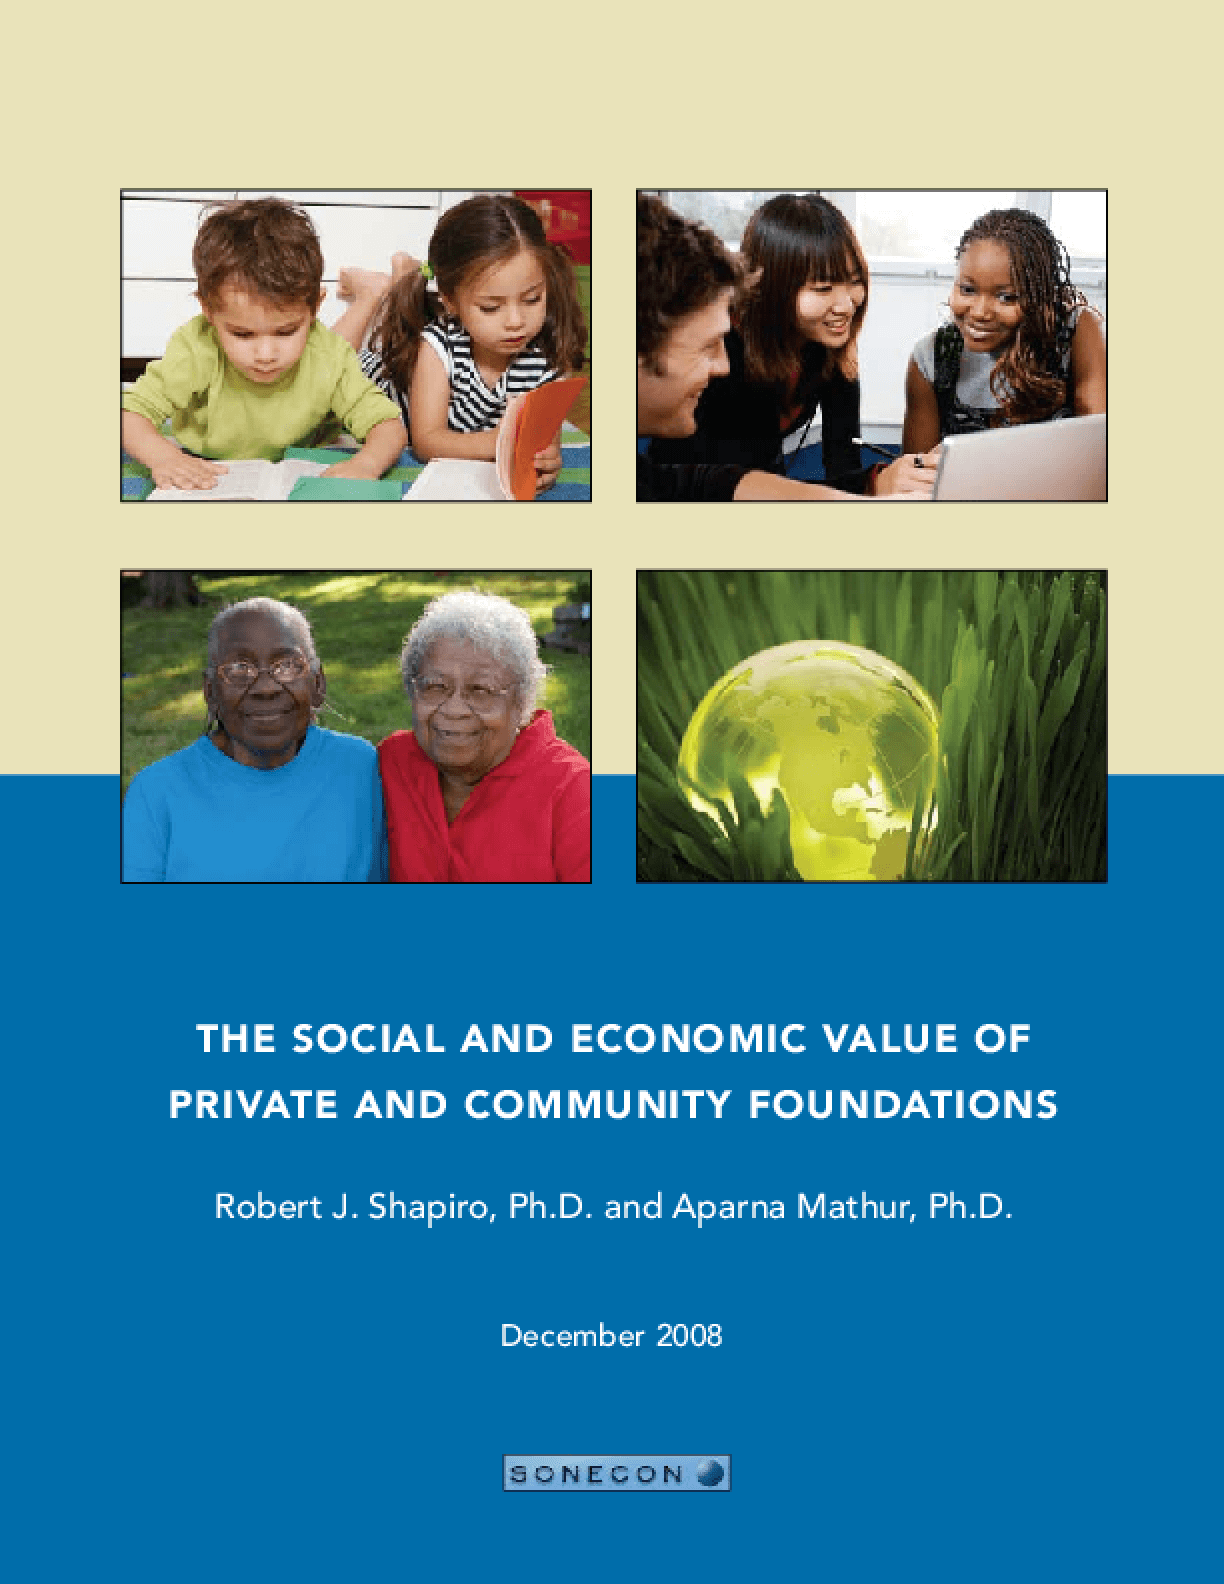 The Social and Economic Value of Private and Community Foundations